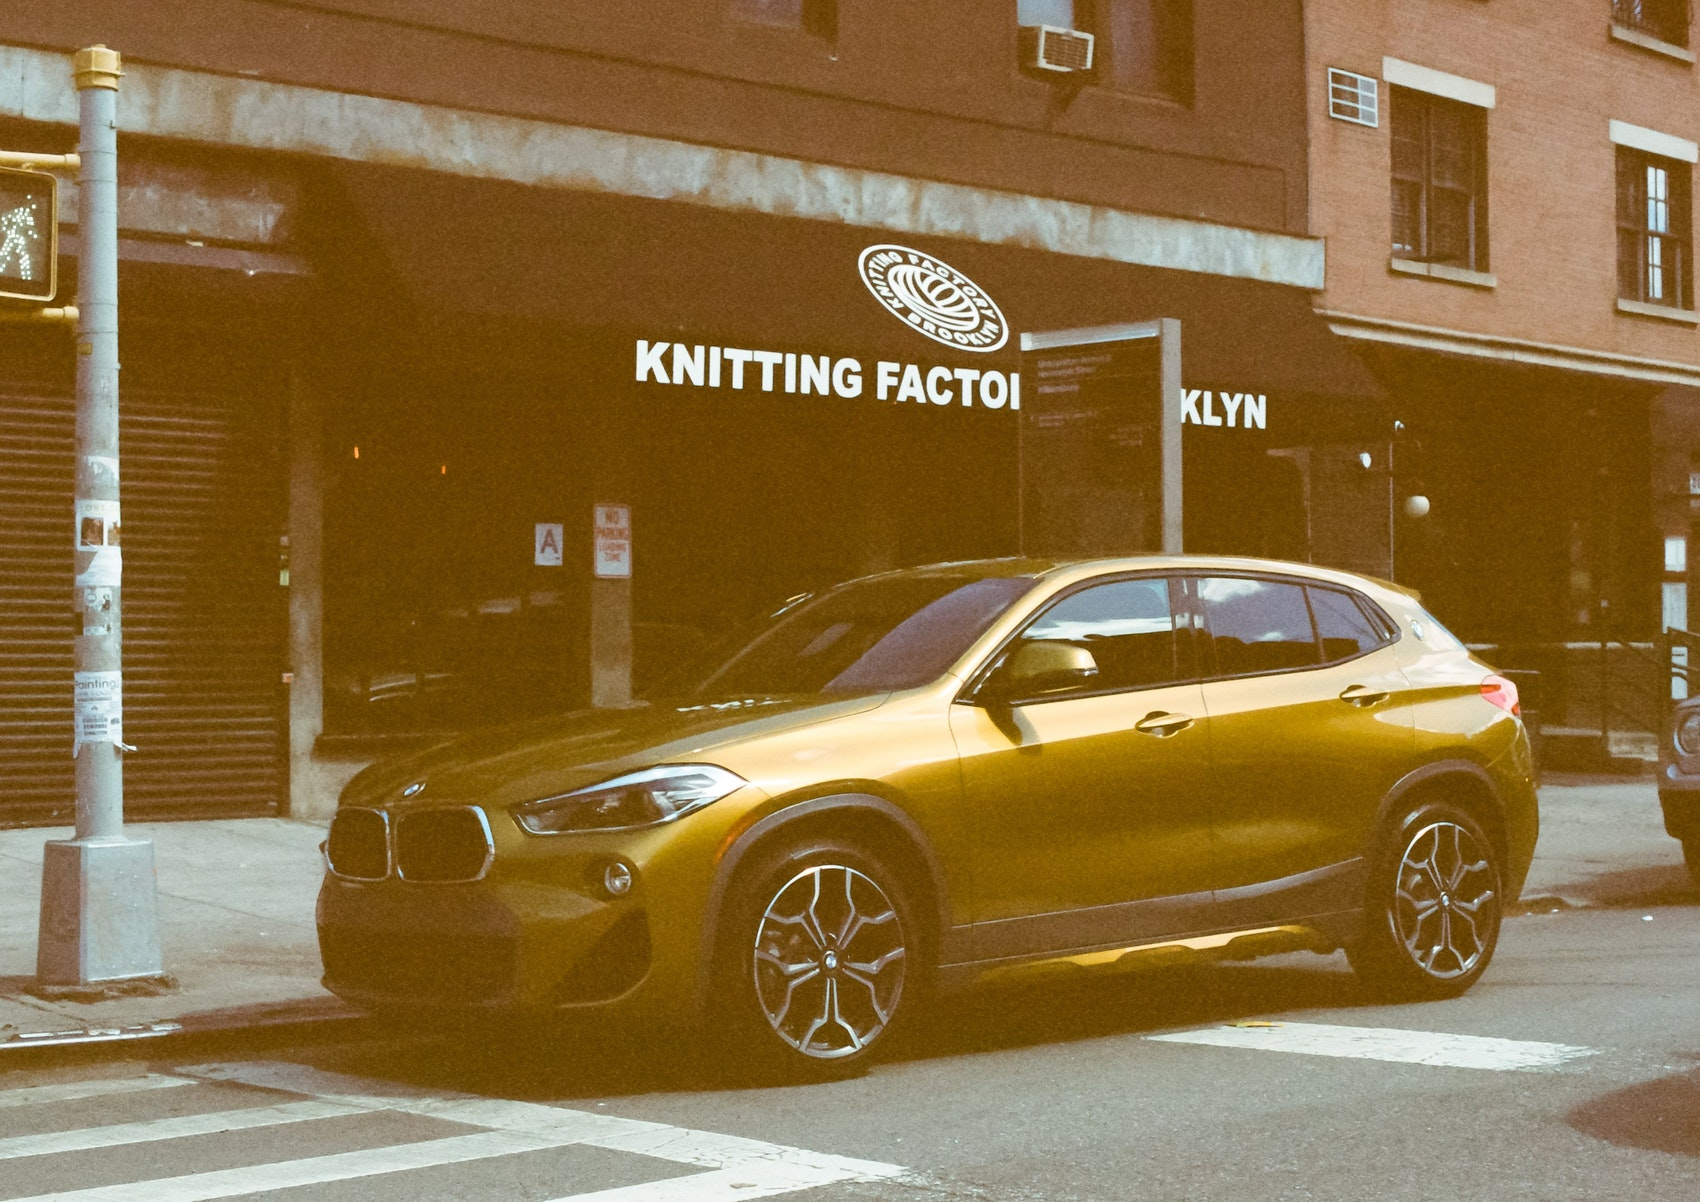 The first-ever BMW X2 pictured in front of the Knitting Factory in Brooklyn